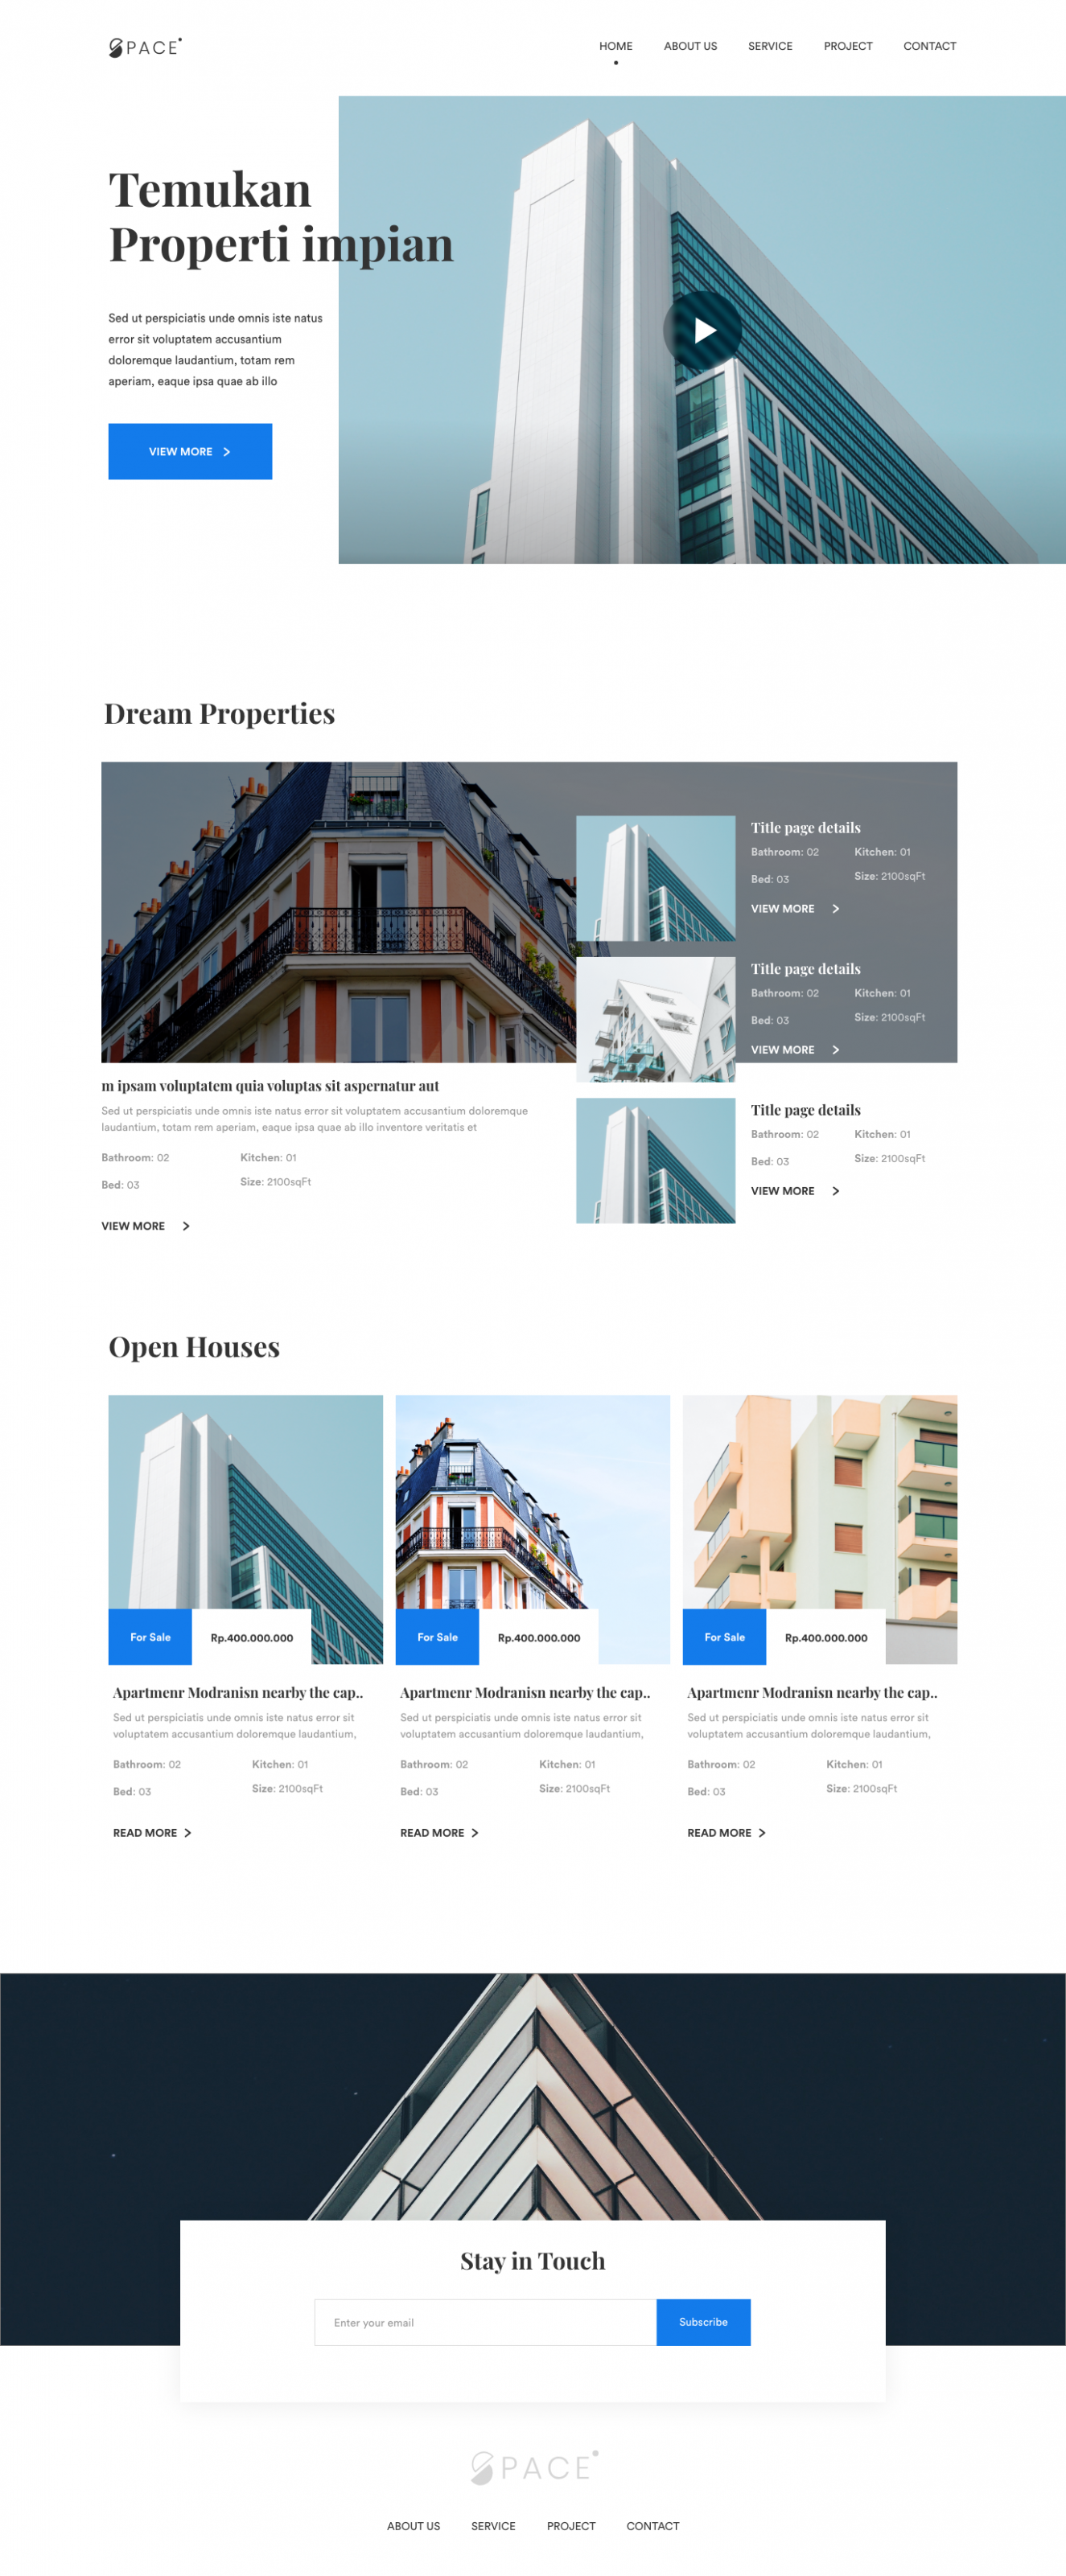 Apartment web design  Website design inspiration, Website design  - Apartment Website Design Inspiration